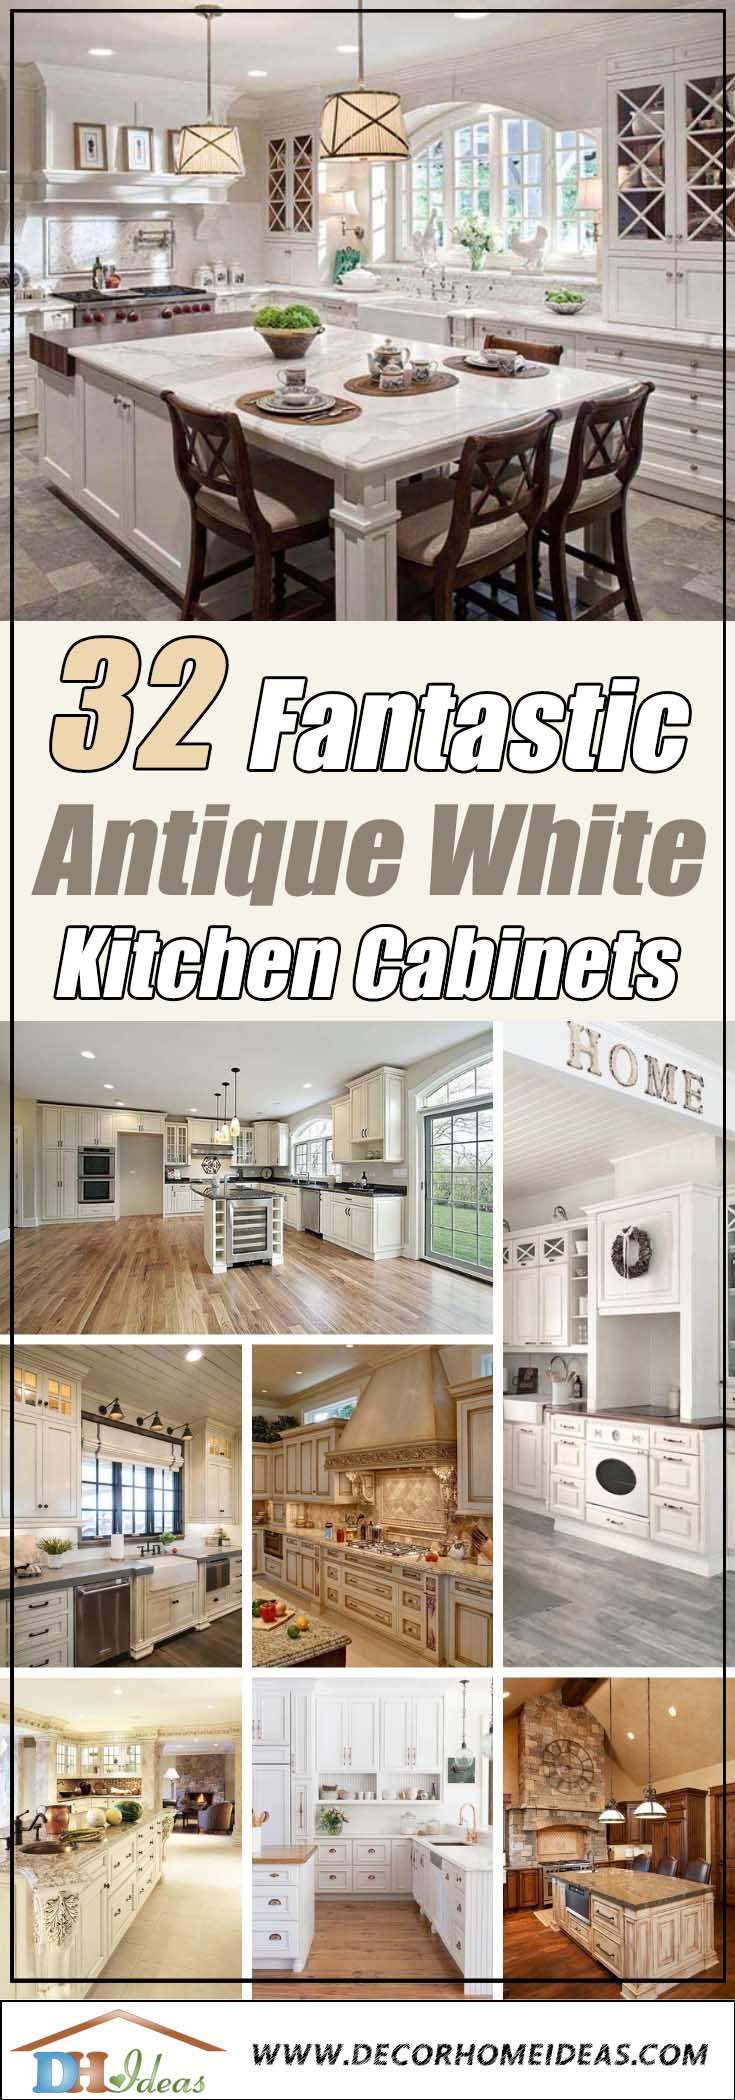 Antique White Kitchen Cabinets - Best colors, designs and ideas. #kitchen #cabinets #decorhomeideas